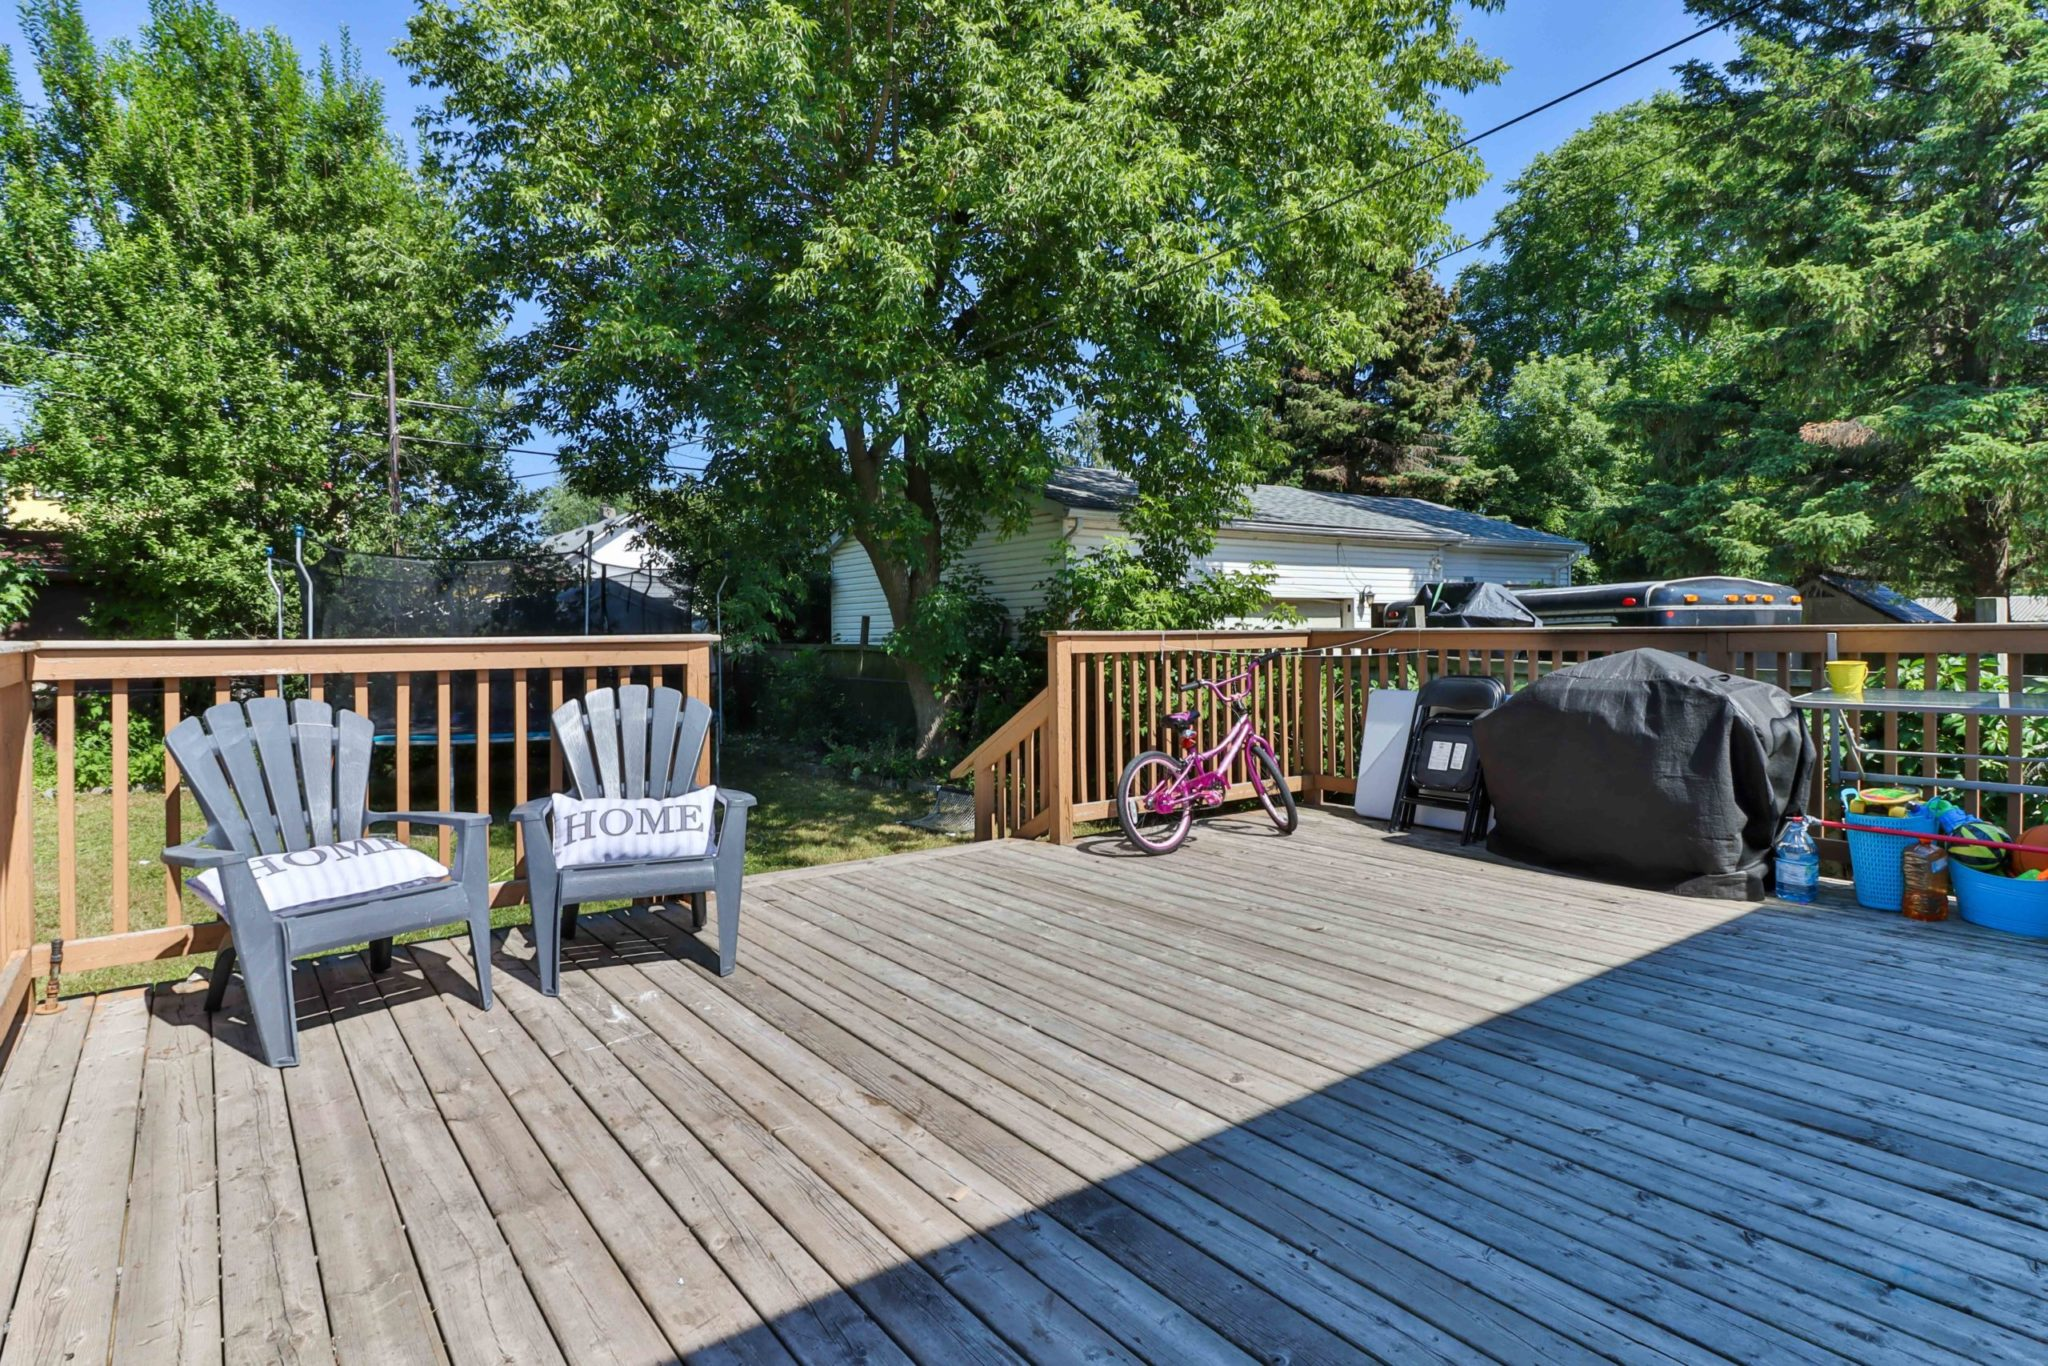 Huge wooden deck with chairs, covered BBQ and bicycle.